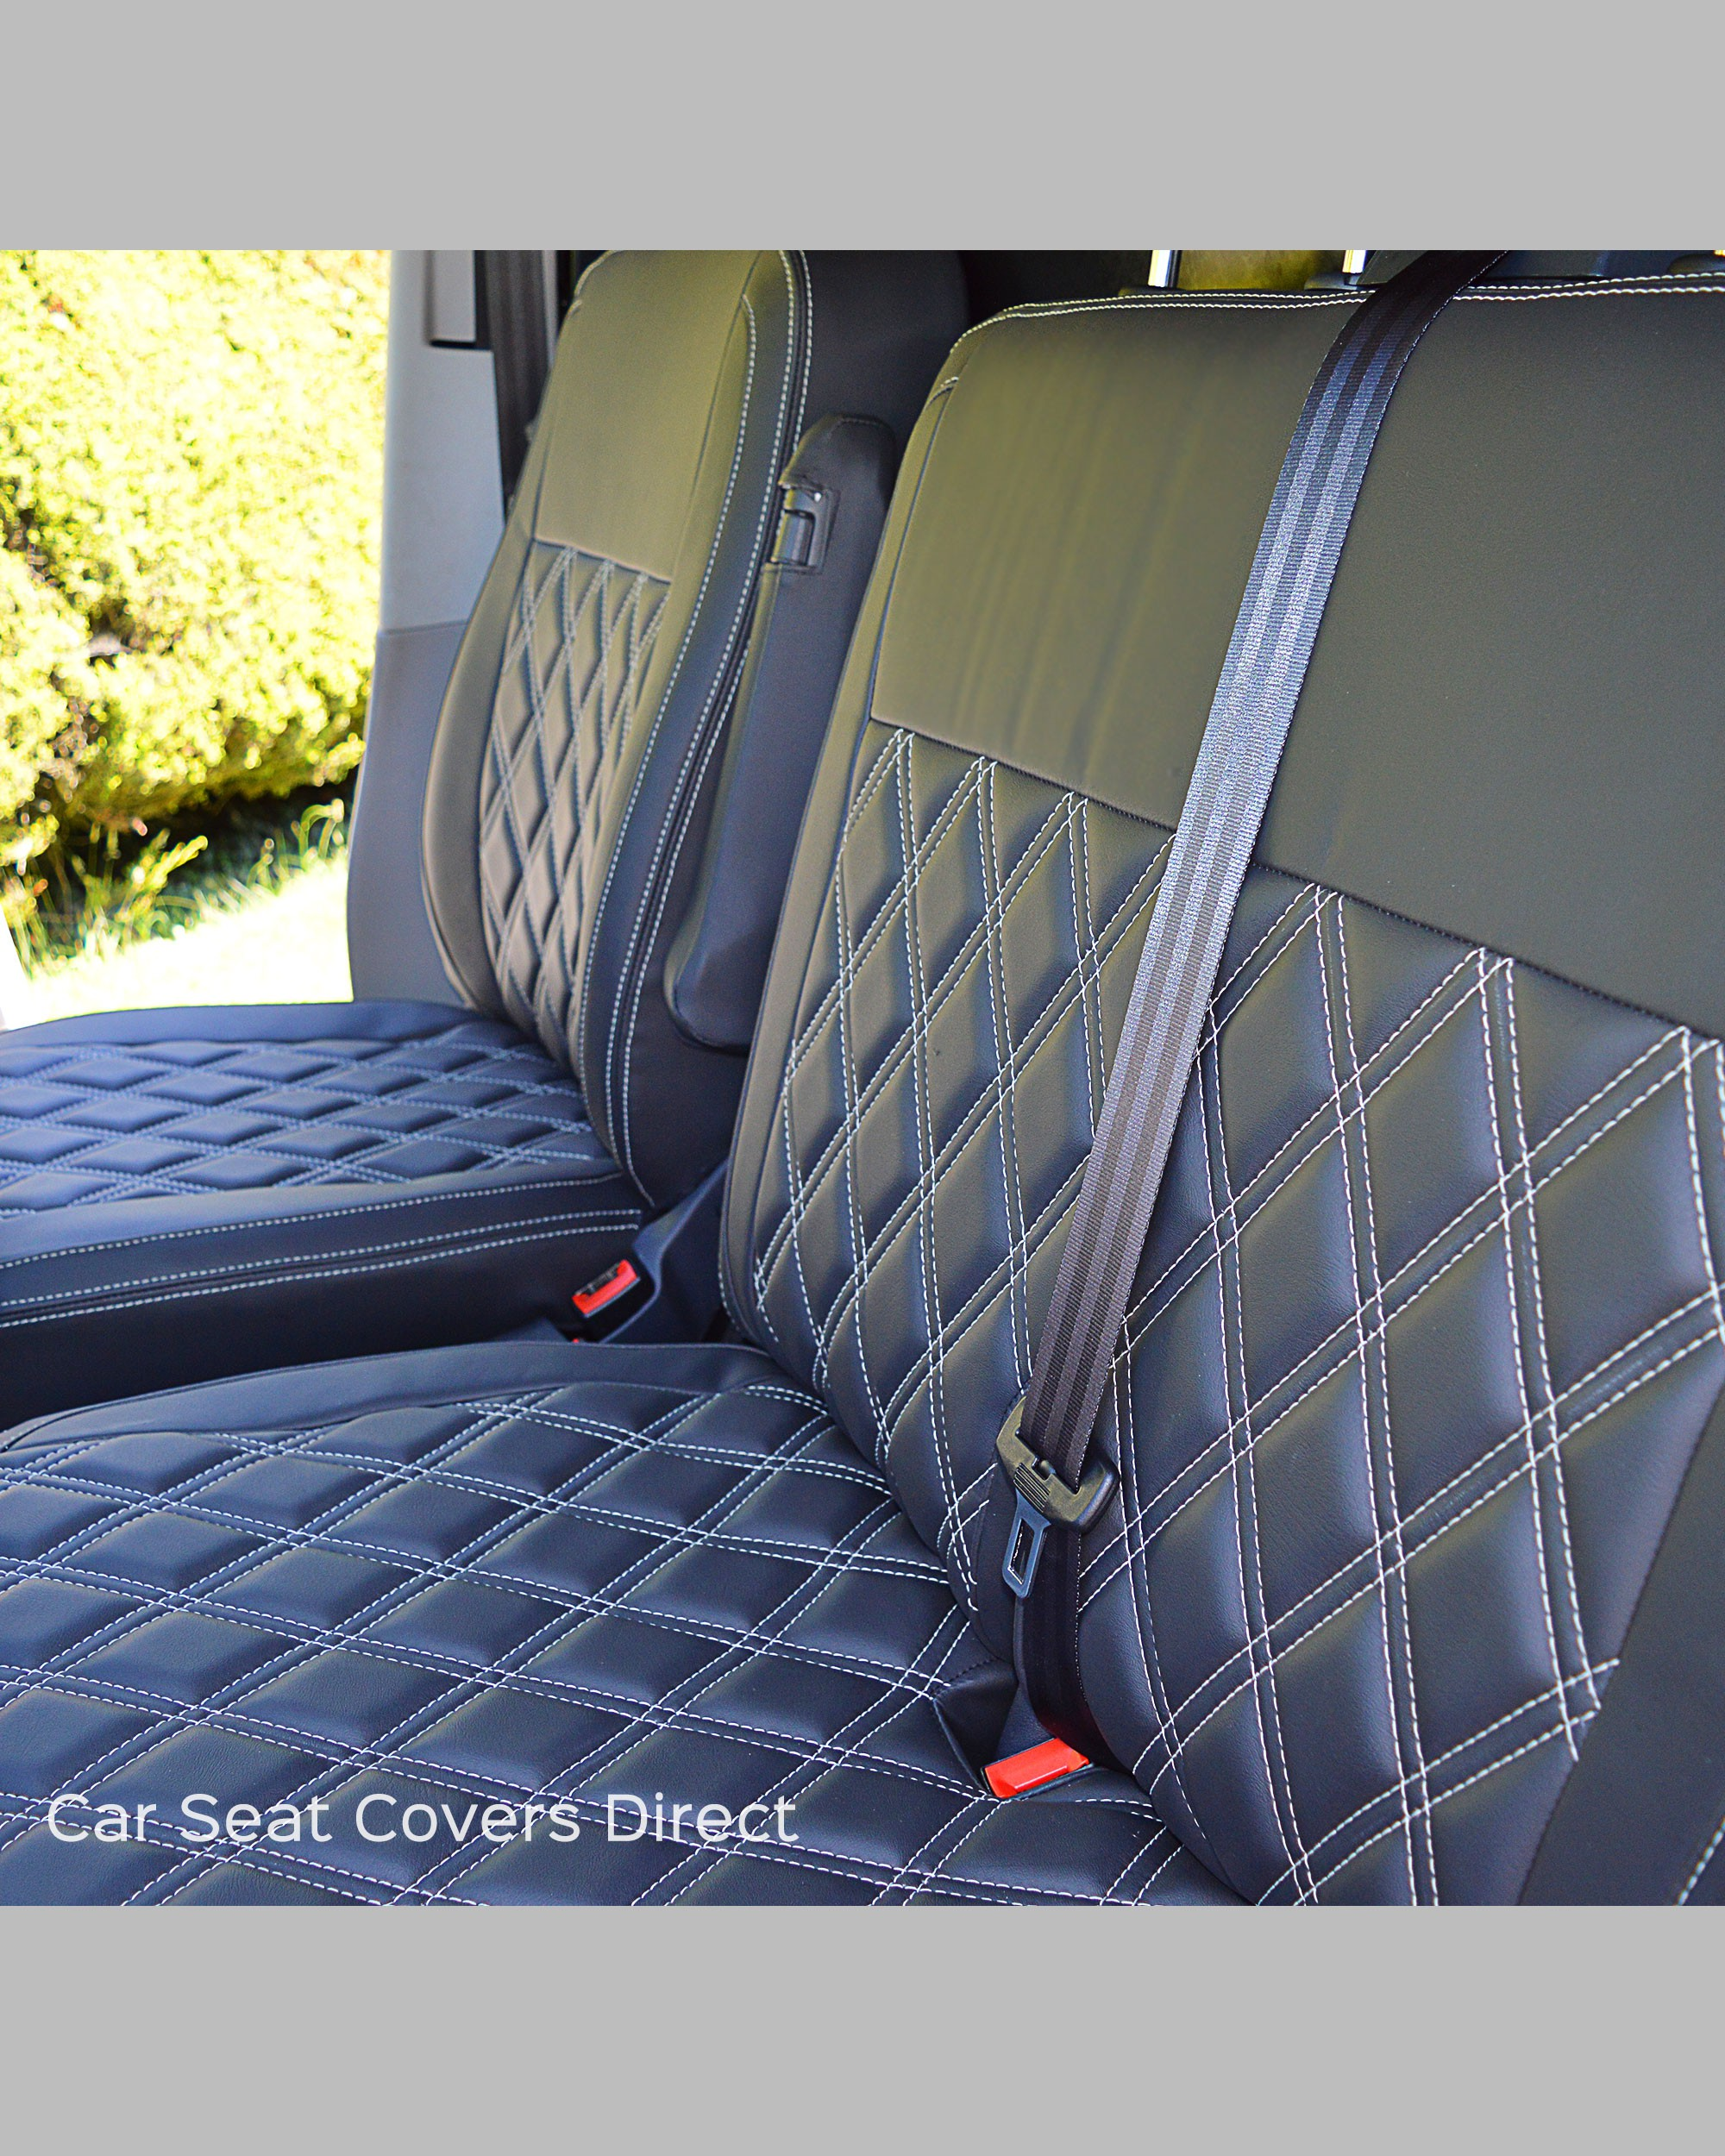 Vw Transporter T6 Tailored Seat Covers Car Seat Covers